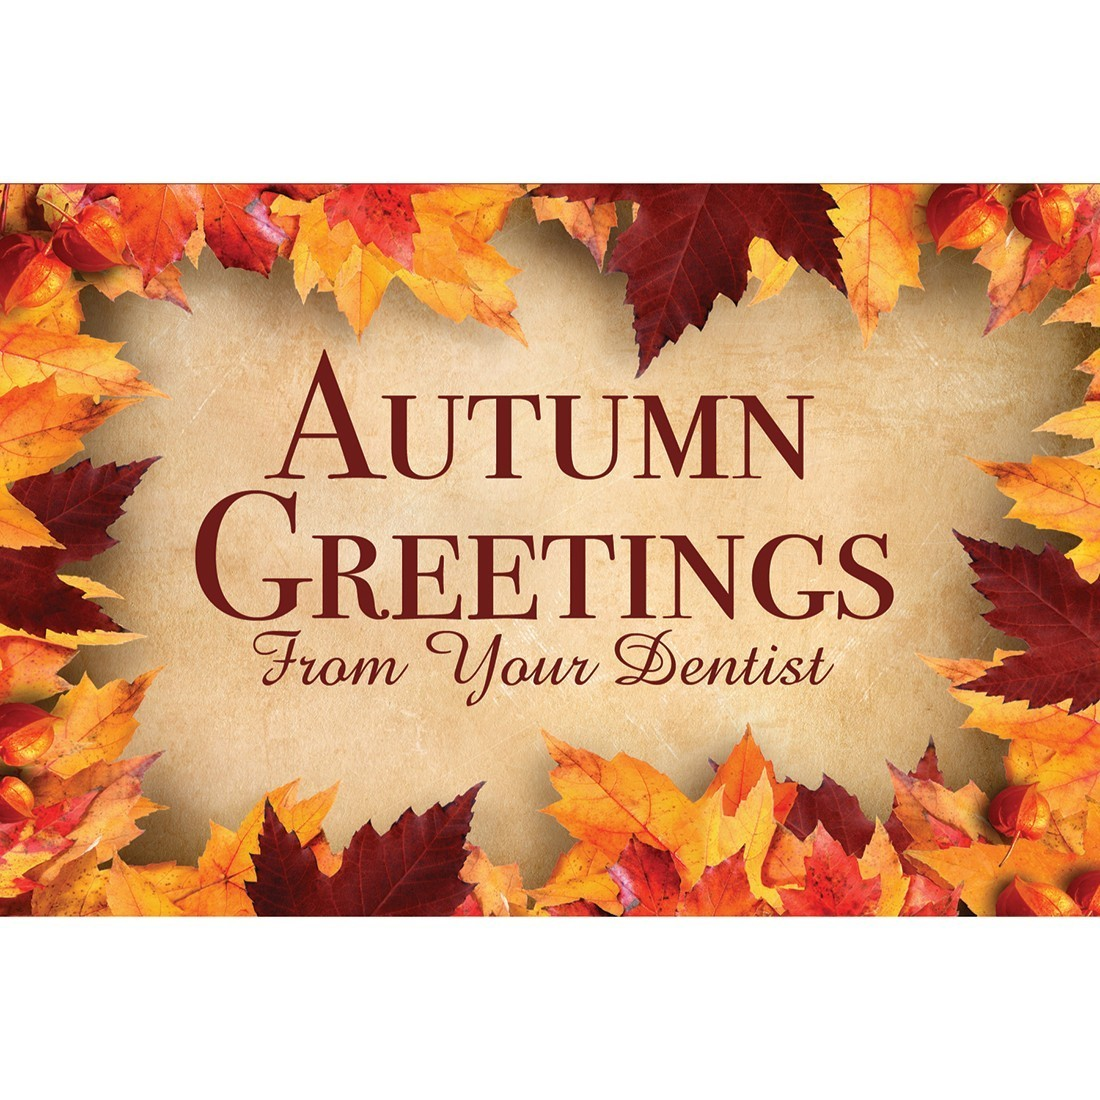 Autumn Greetings Dental Greeting Cards [image]